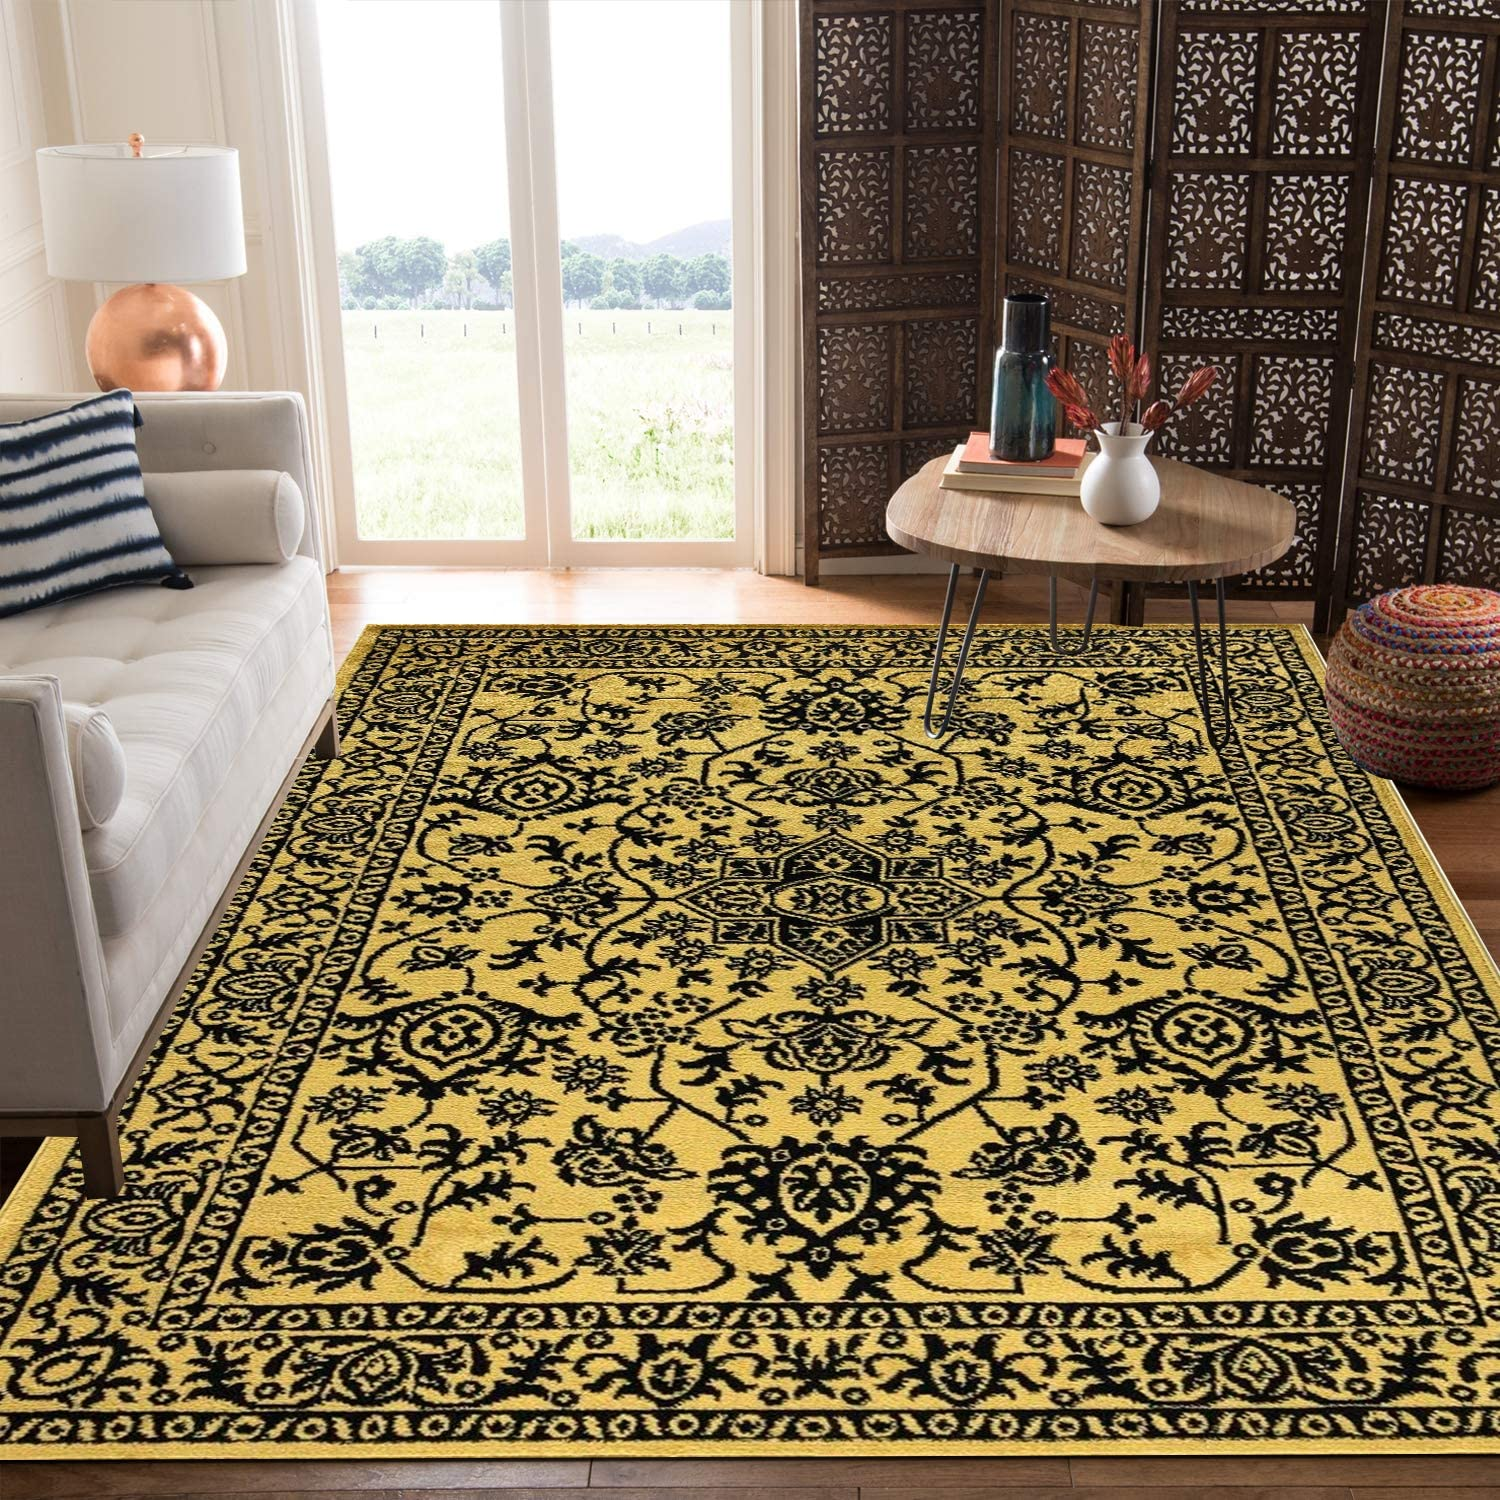 Kitchen Rugs Non Slip Washable Anti Skid Geometric Rugs Living Room Distressed Area Rug For Dining Room Table Carpet Mat 120 X 170 Cm 4 Ft X 5 Ft 6